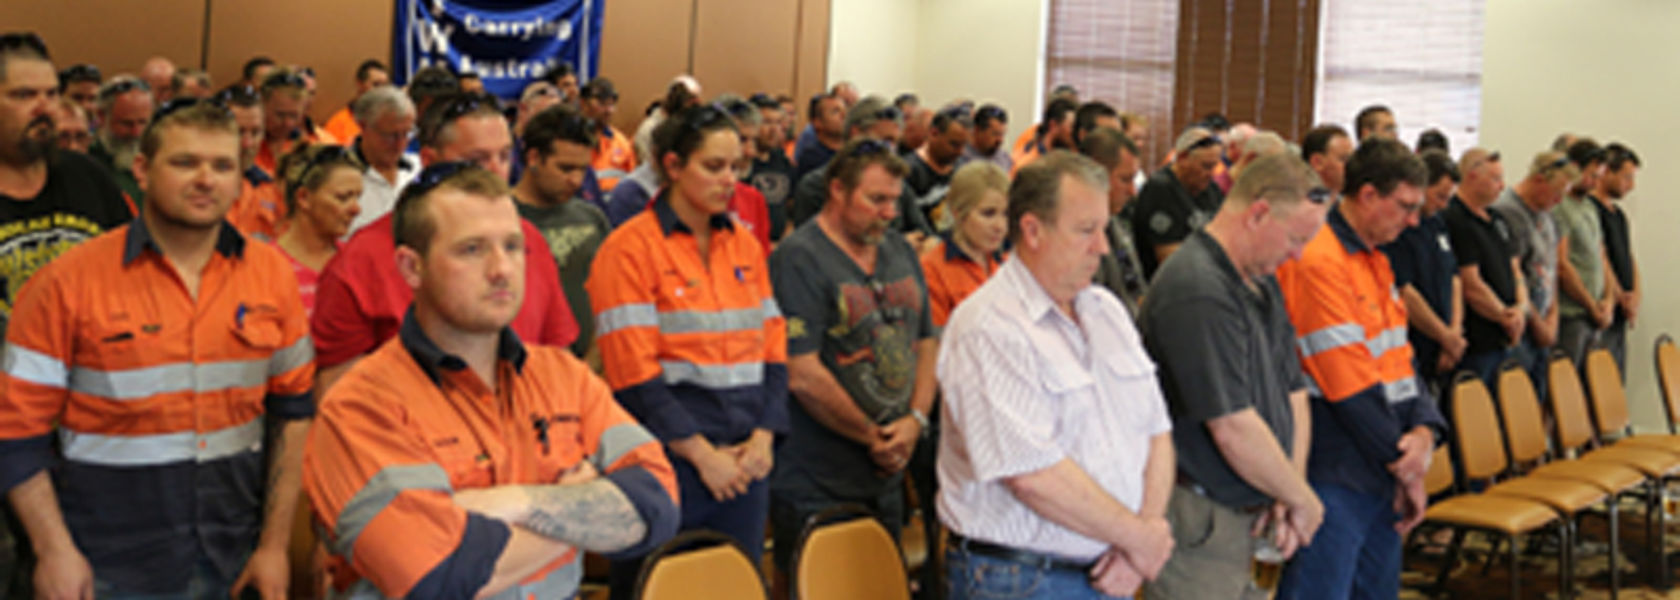 Qld safety conference cancelled because of COVID-19